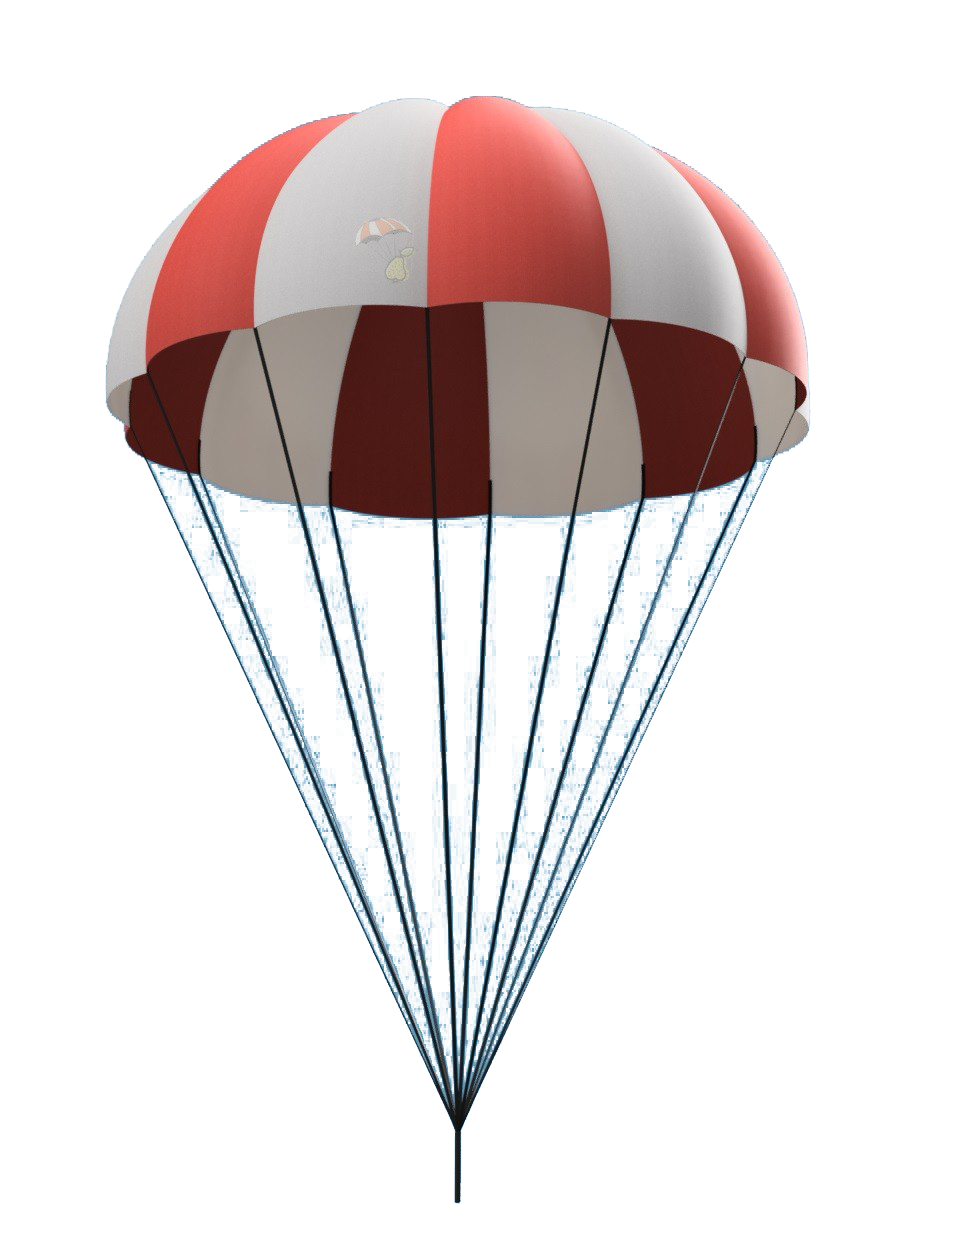 Parachute PNG Free Image Download.